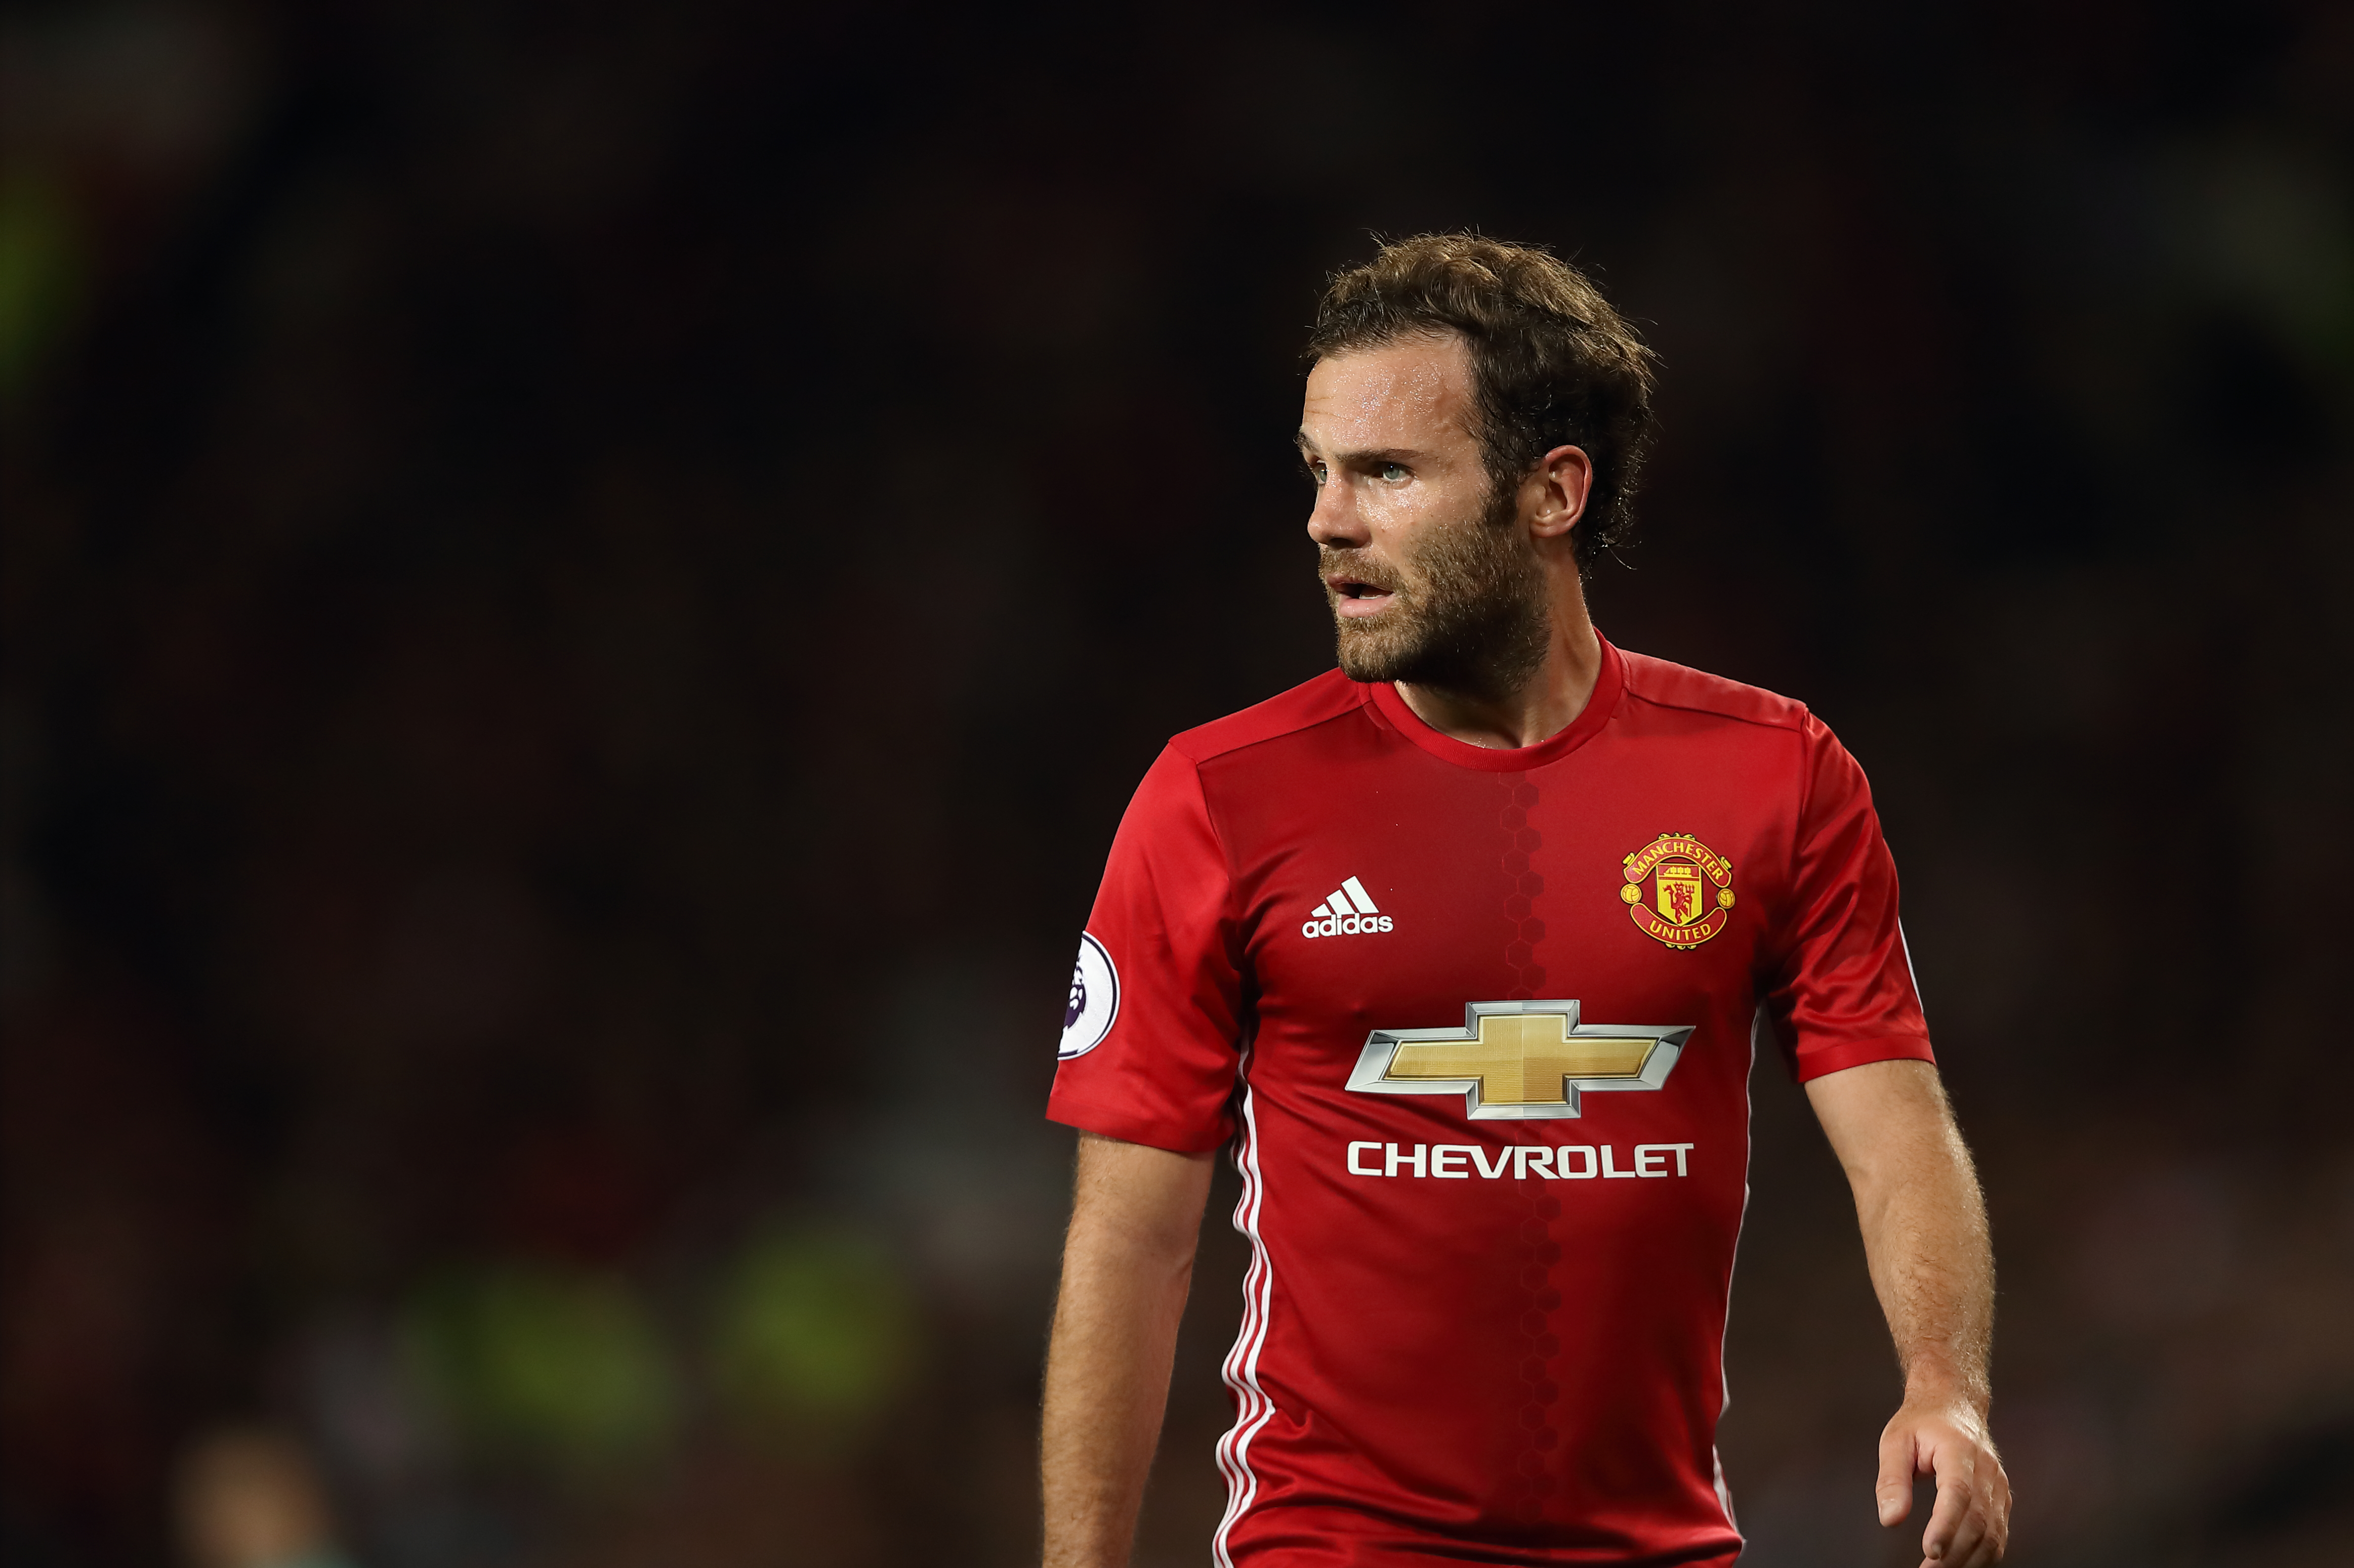 Juan Mata Is A Victim The Attacking Midfielder Position